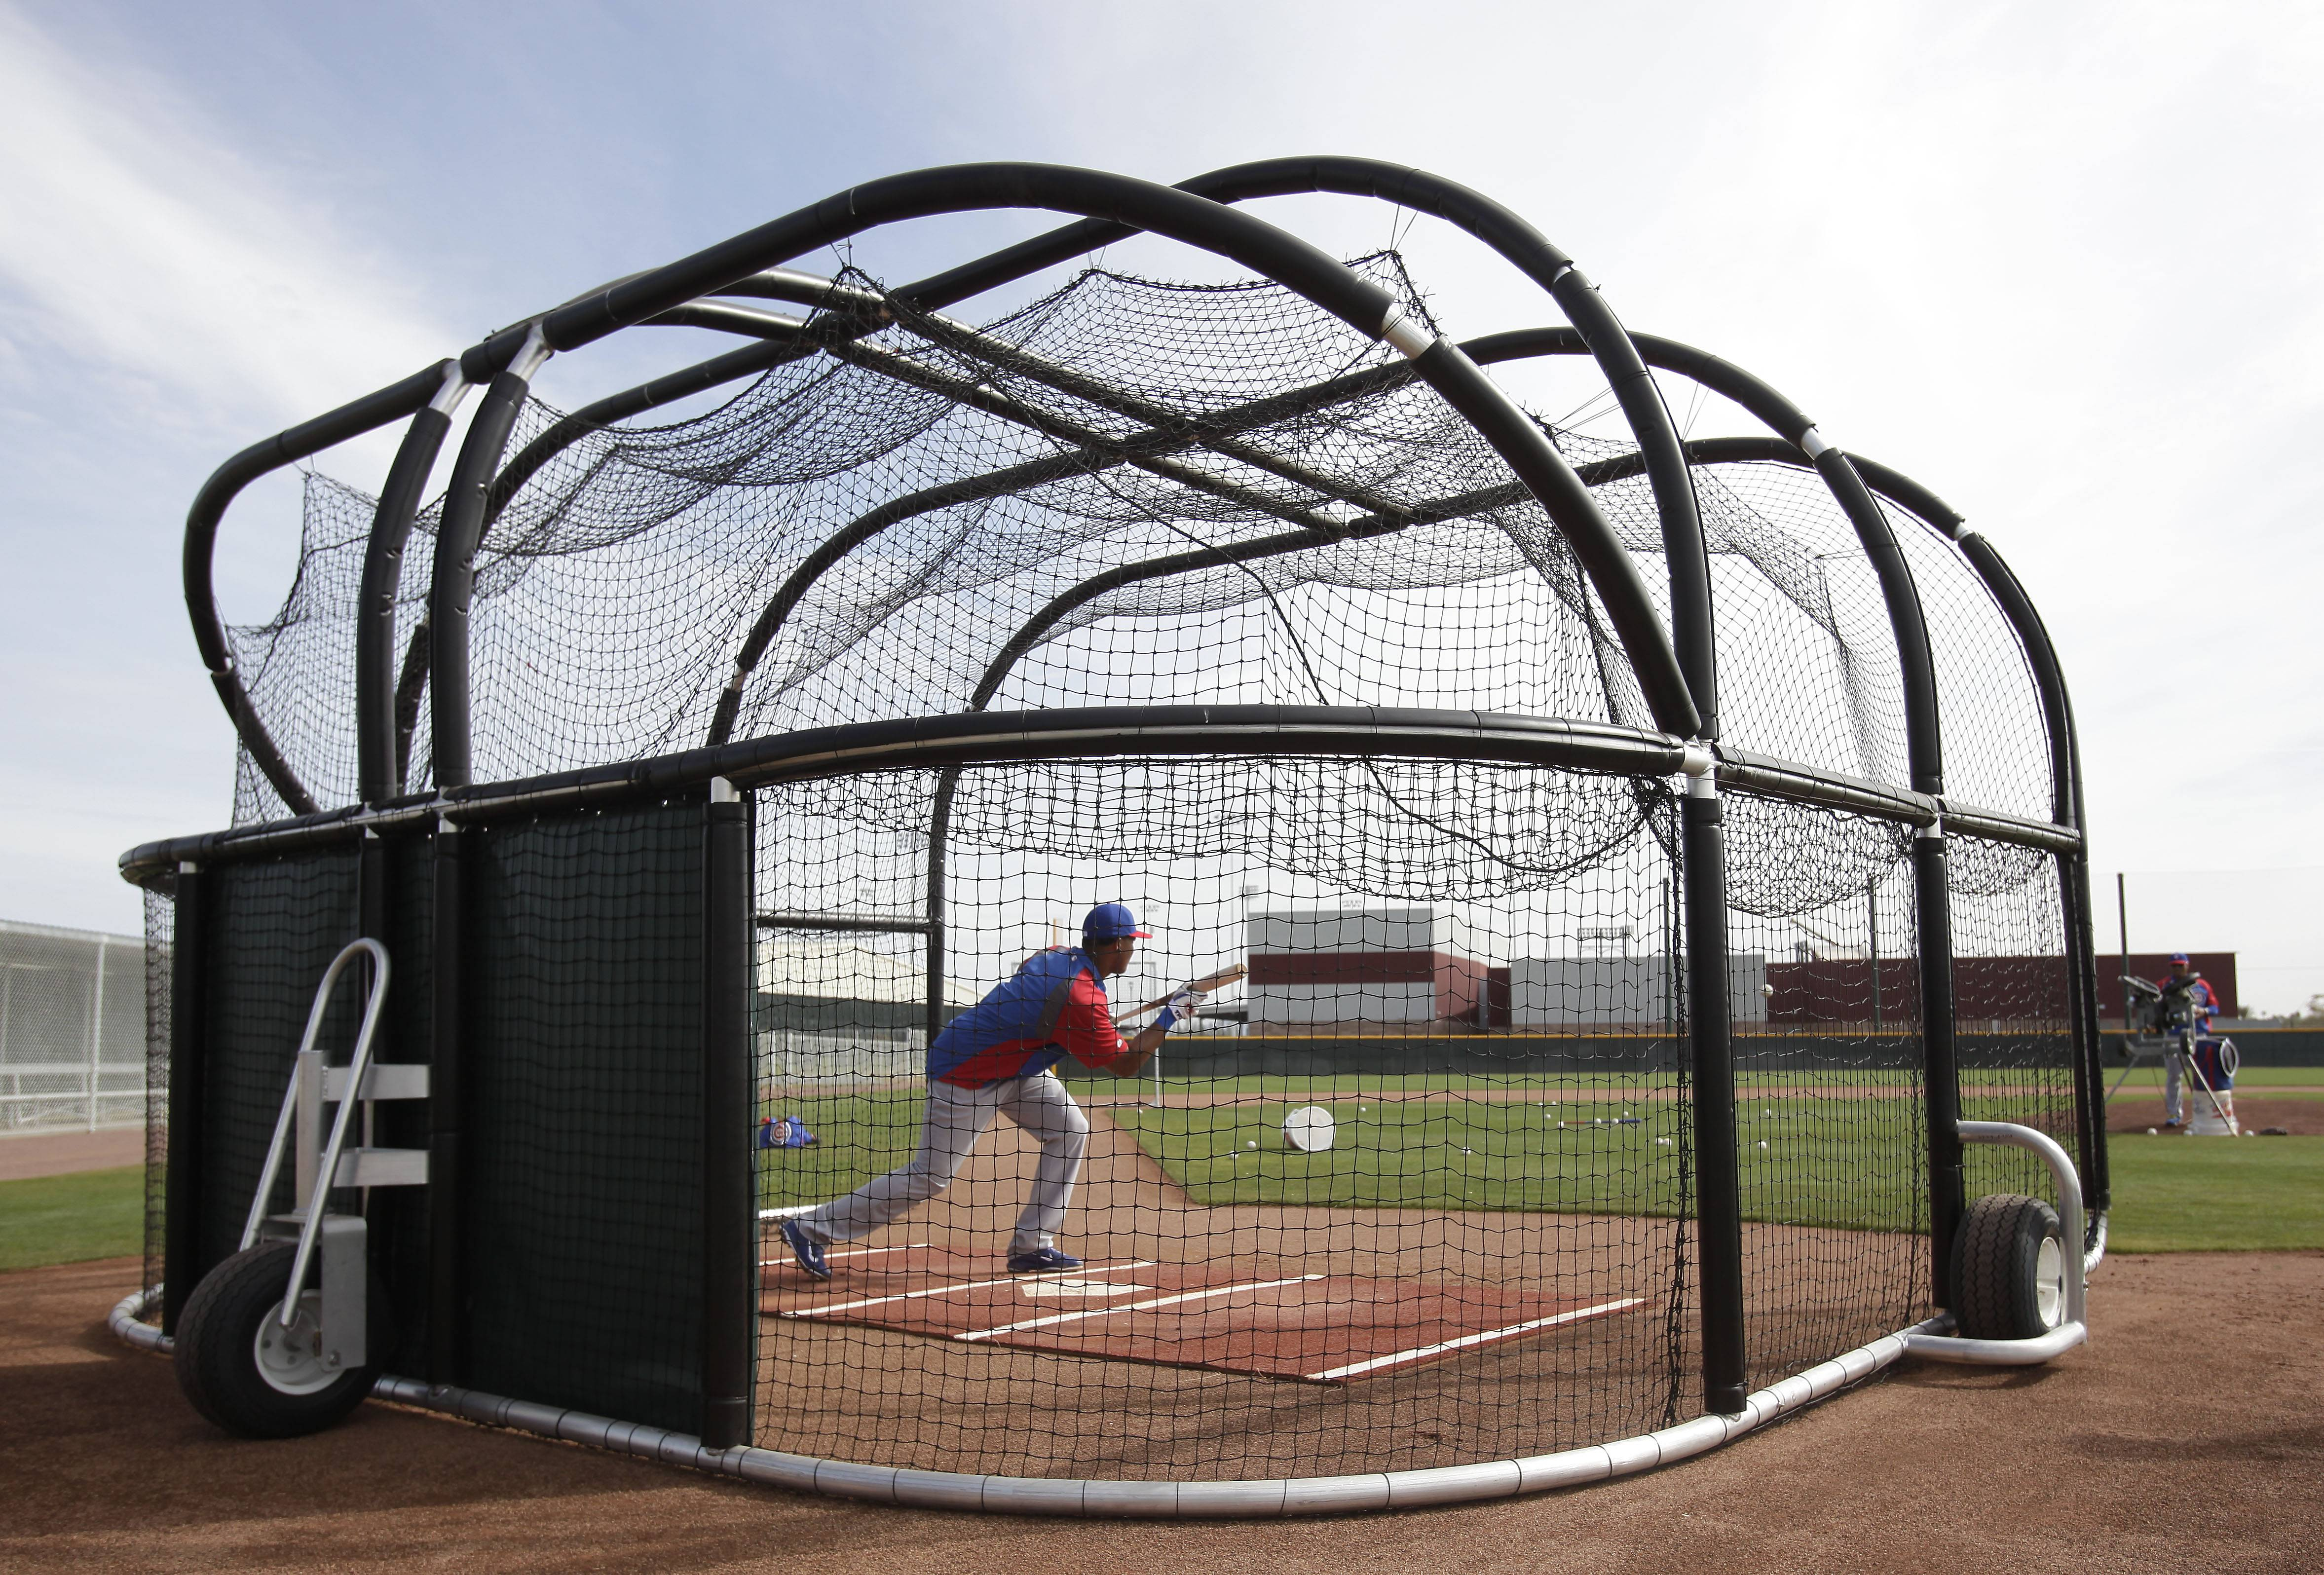 Cubs shortstop Starlin Castro bunts during spring-training practice.